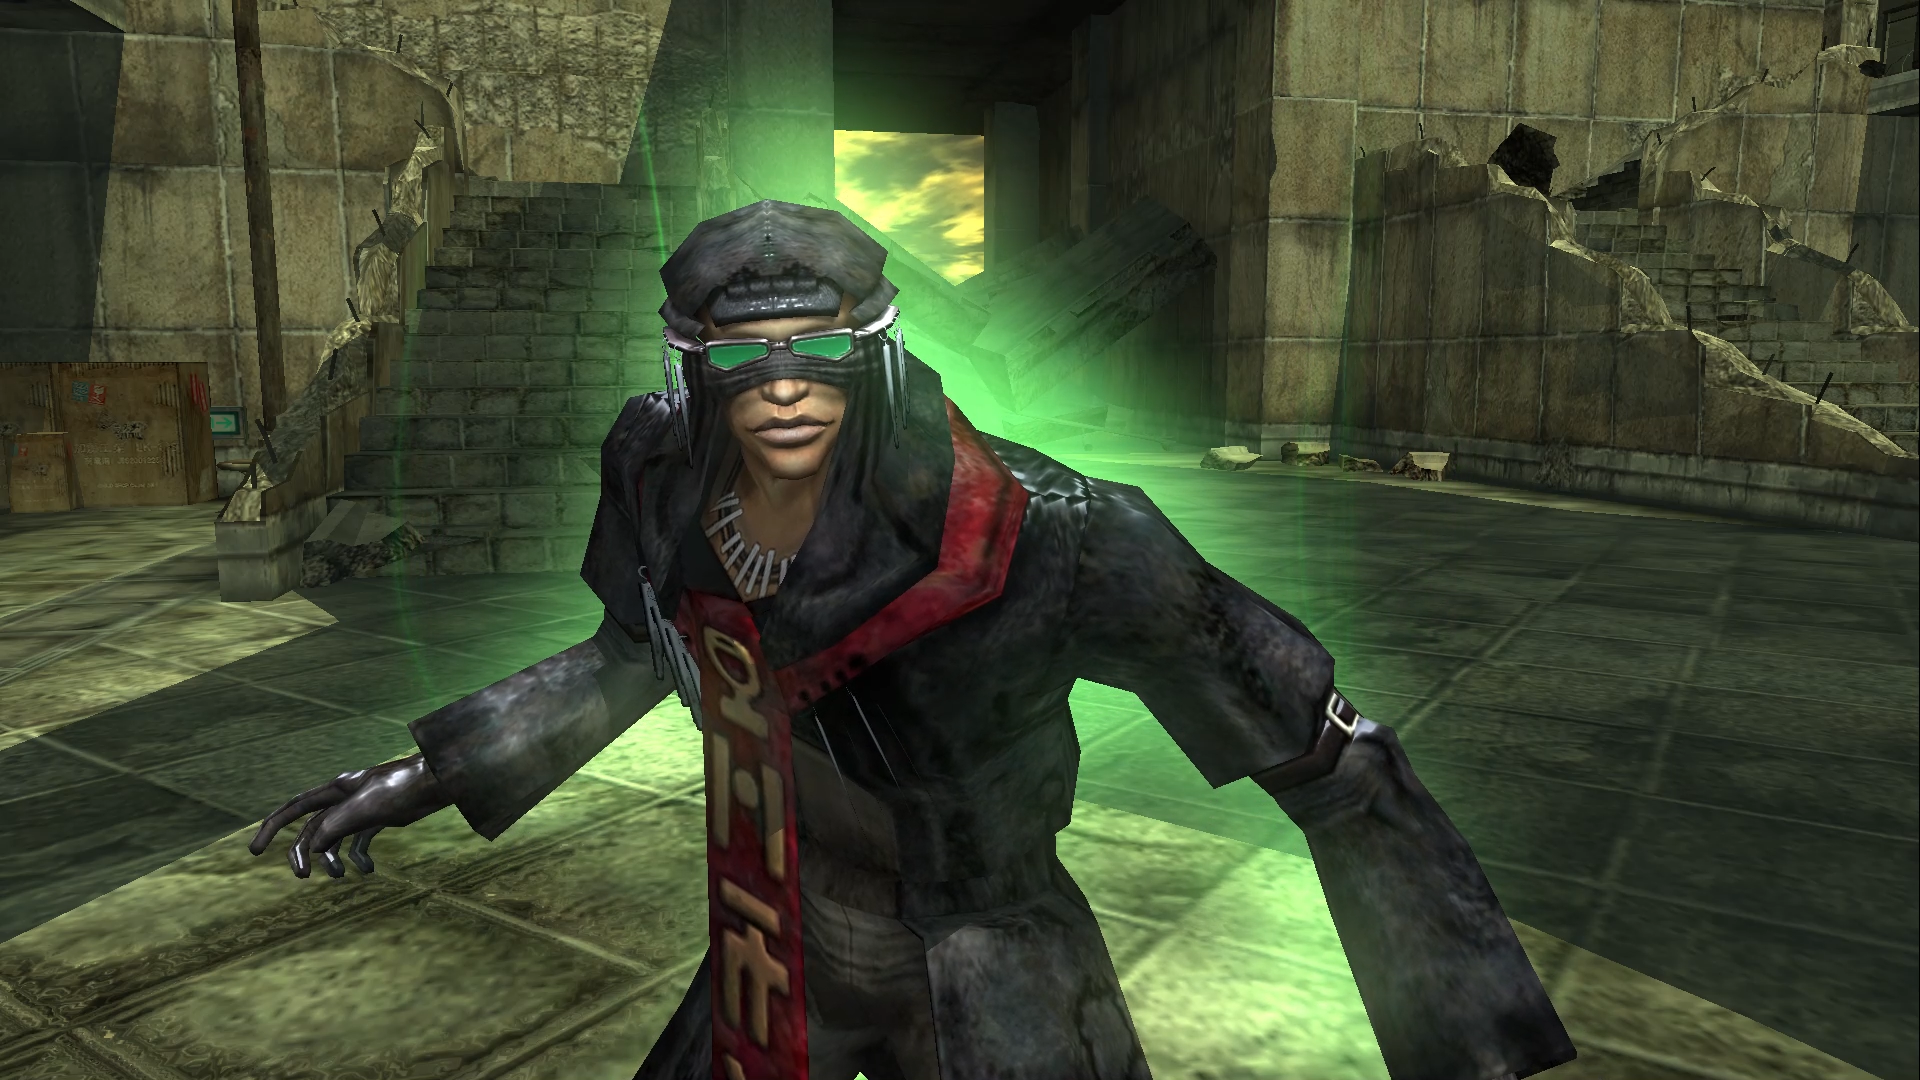 Phantom Dust Remastered Will Have Native Resolution, DLC and Mission Skipping